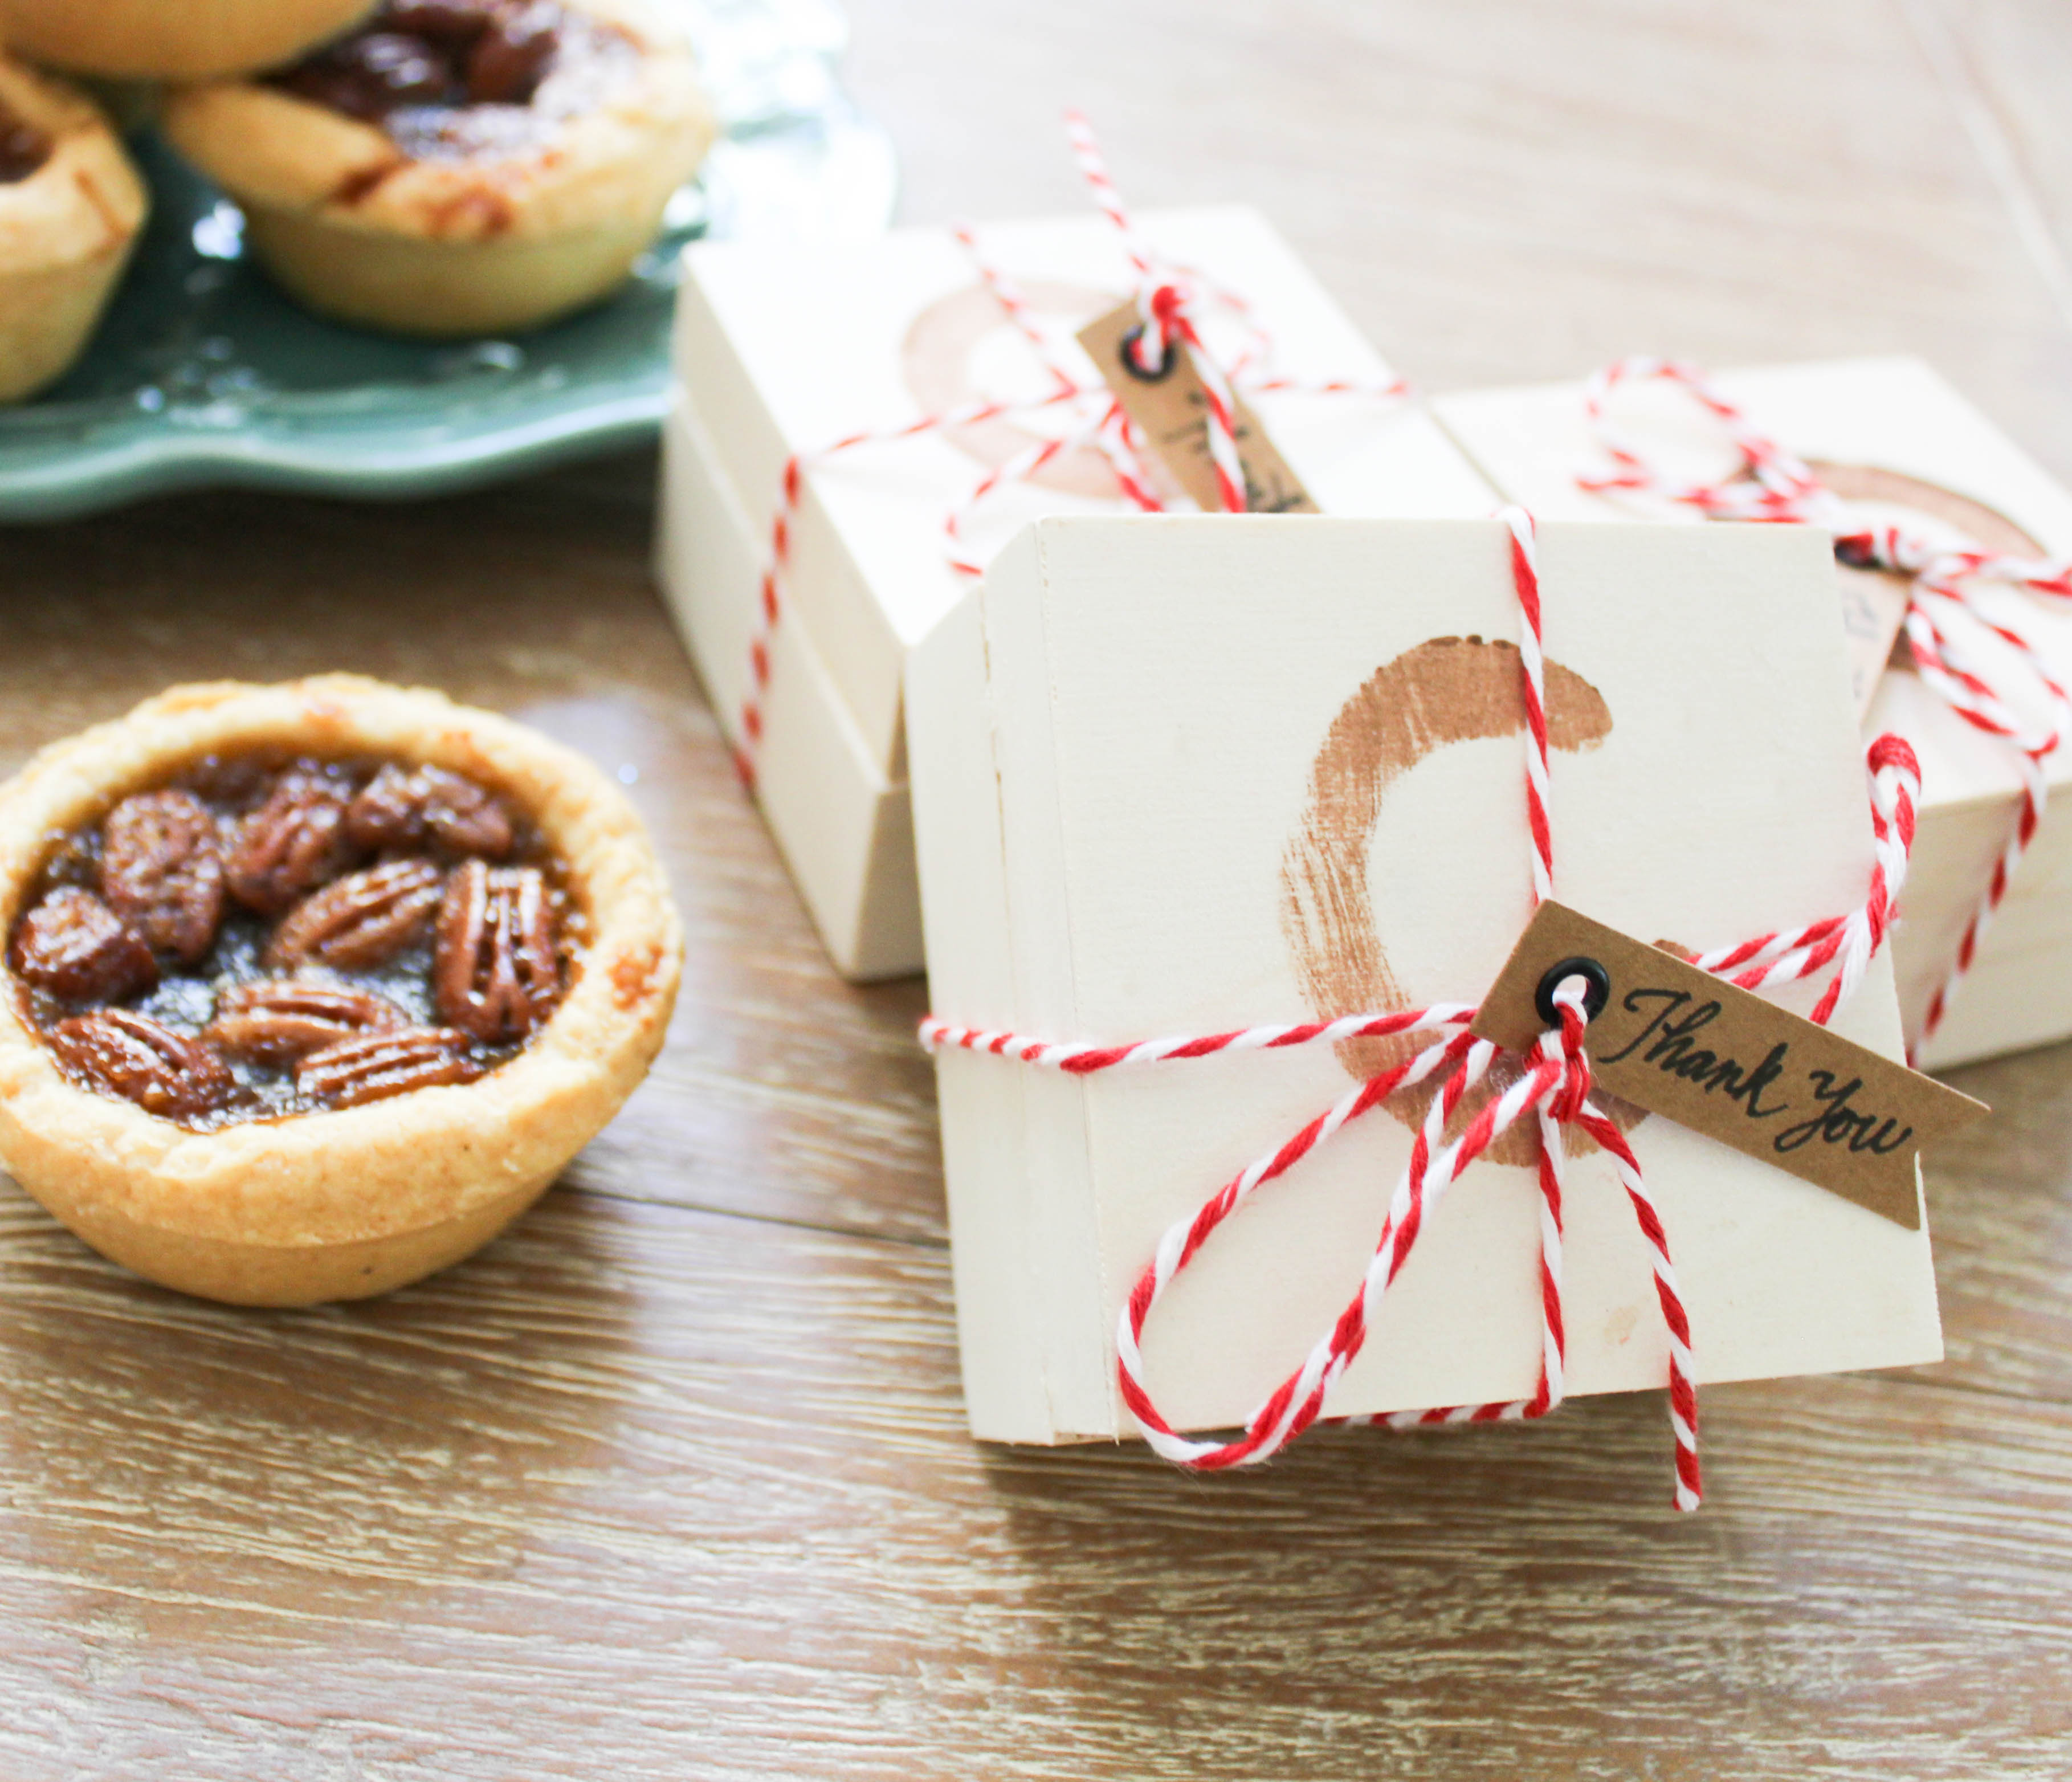 Miniature Pies in Stamped Wood Boxes - Ritzy Parties